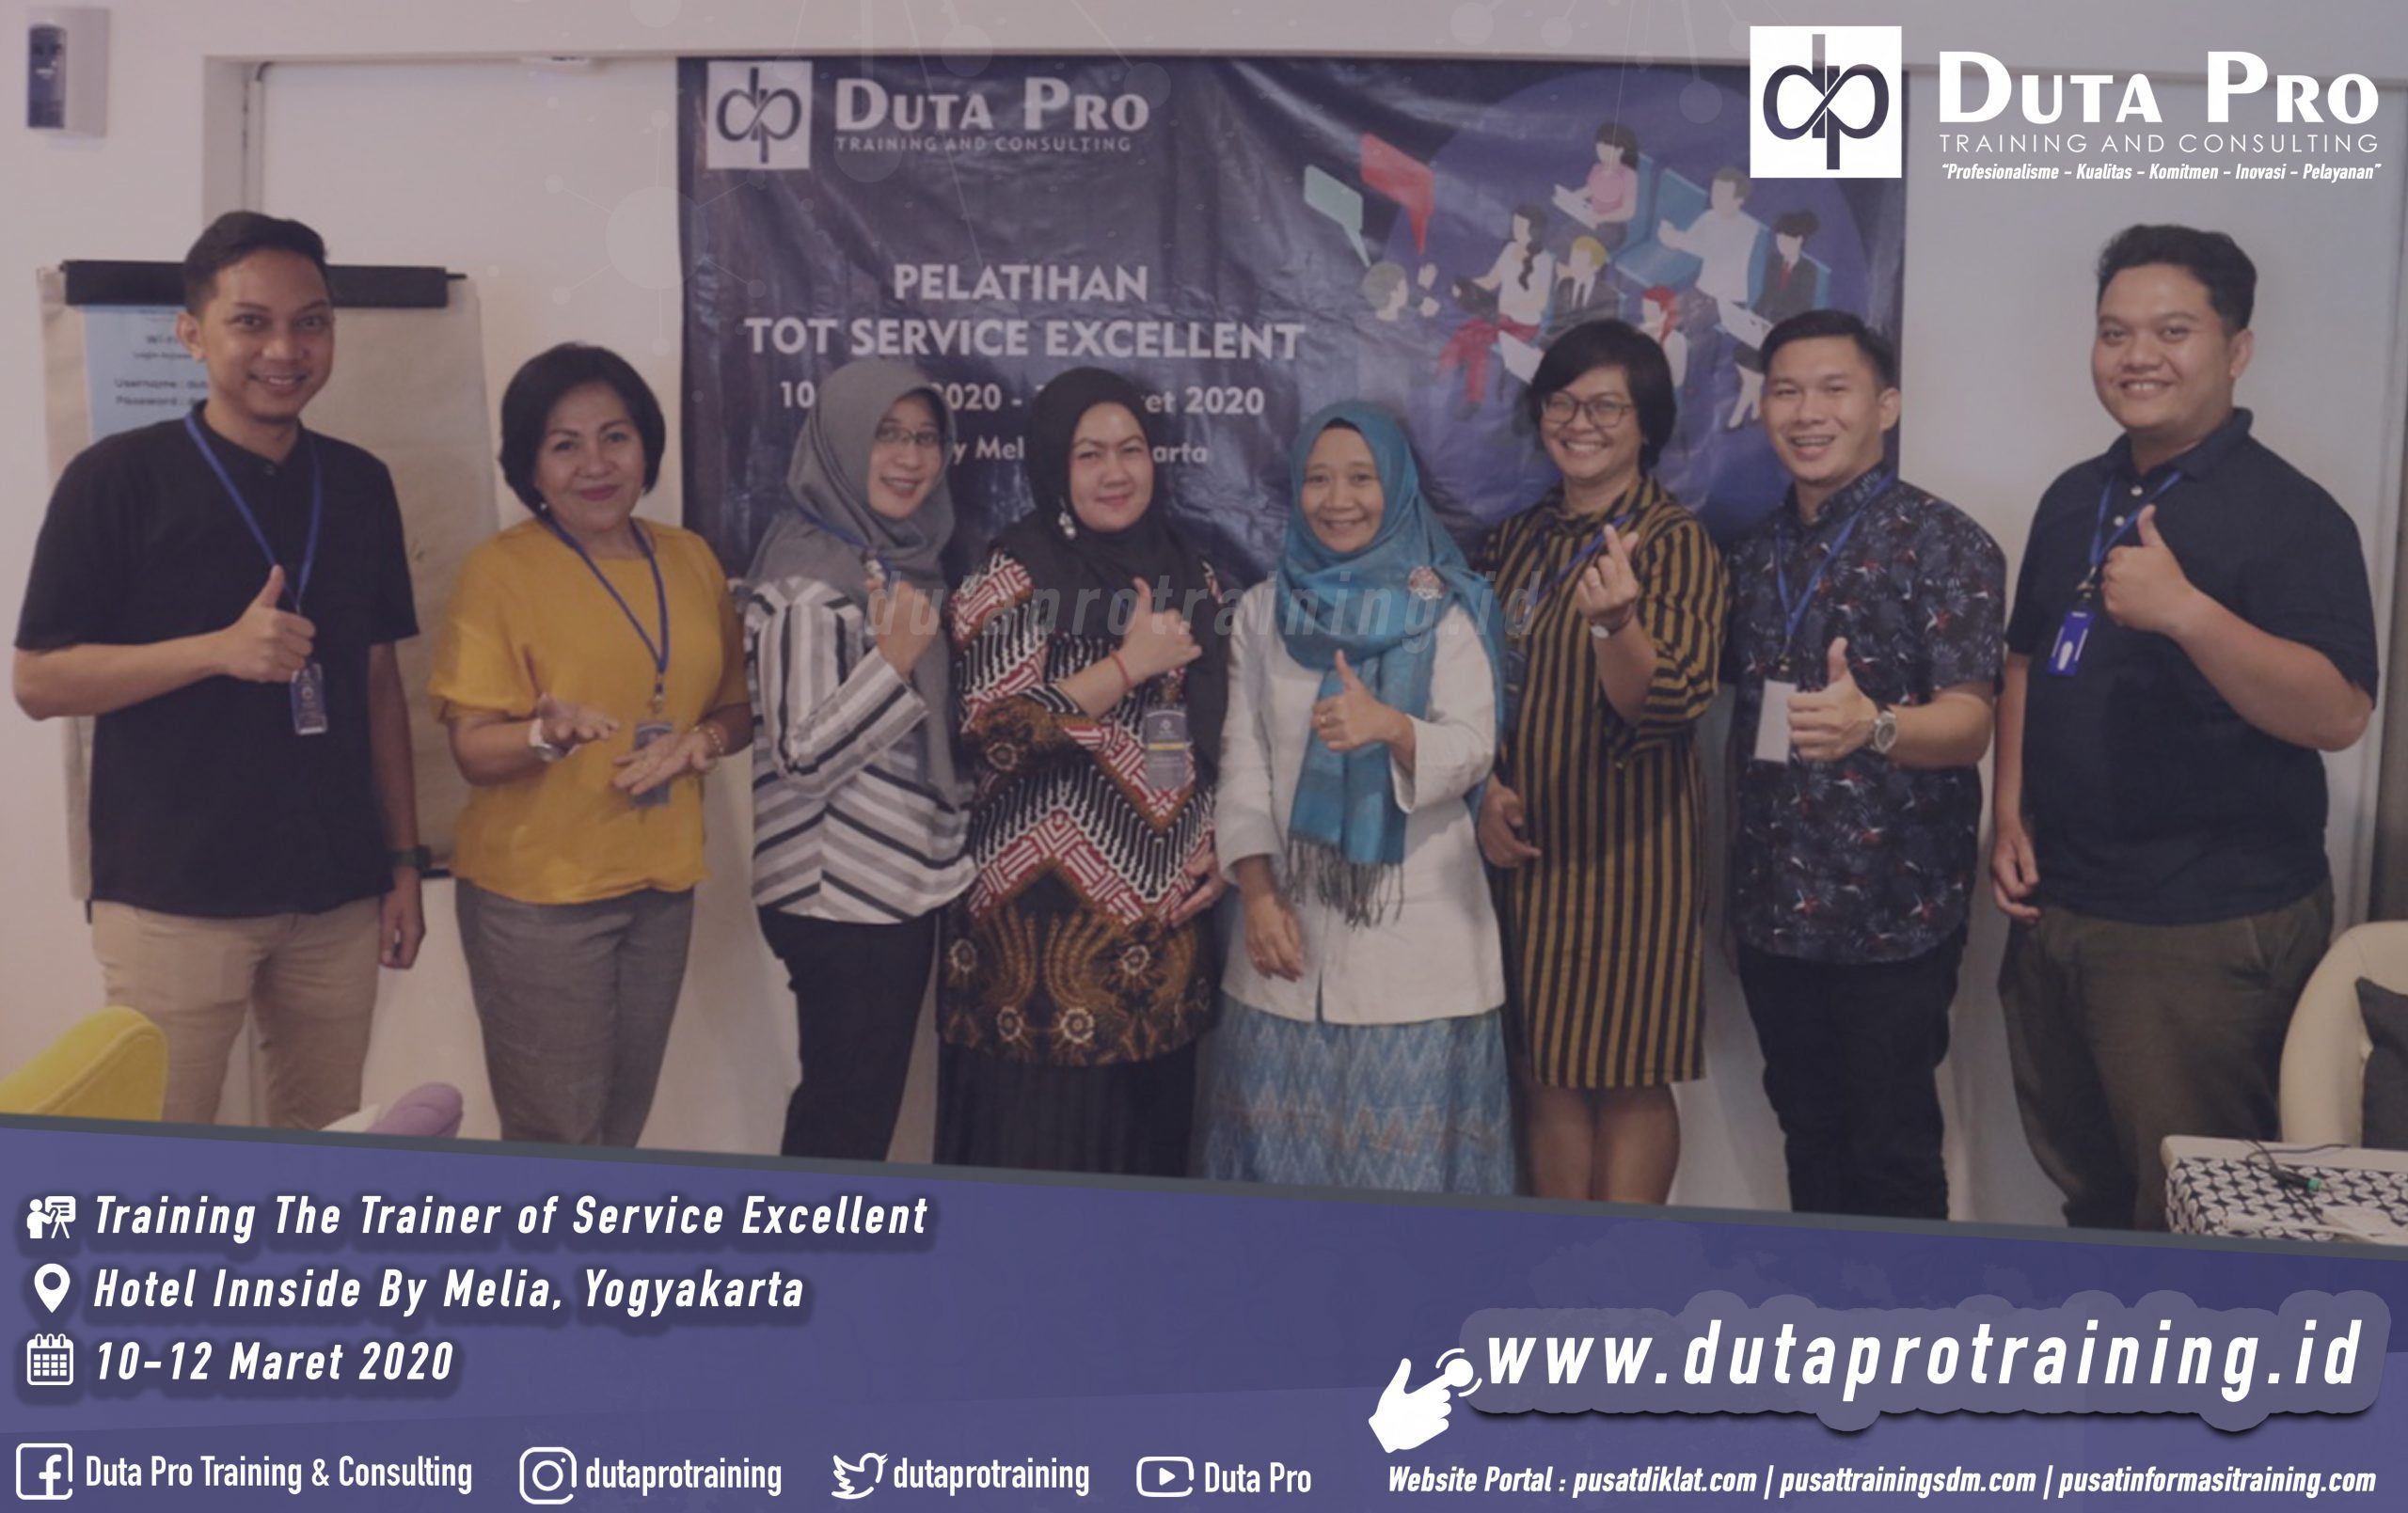 Training The Trainer of Service Excellent Yogyakarta Galeri Website scaled 2559x1609 - Training Customer Service Skills for Online Service